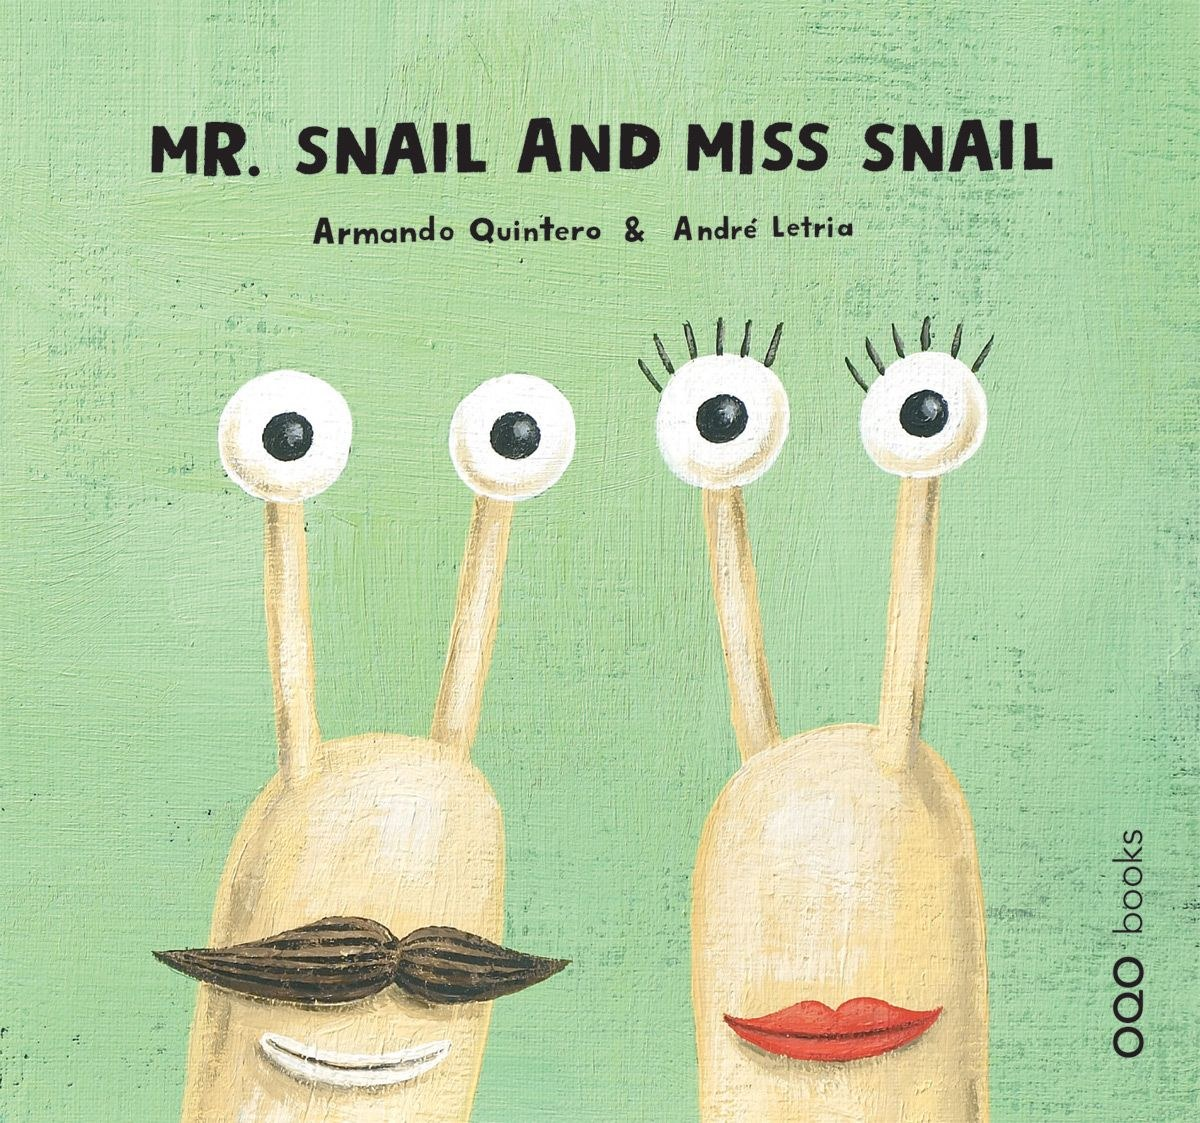 Mr Snail and Miss Snail